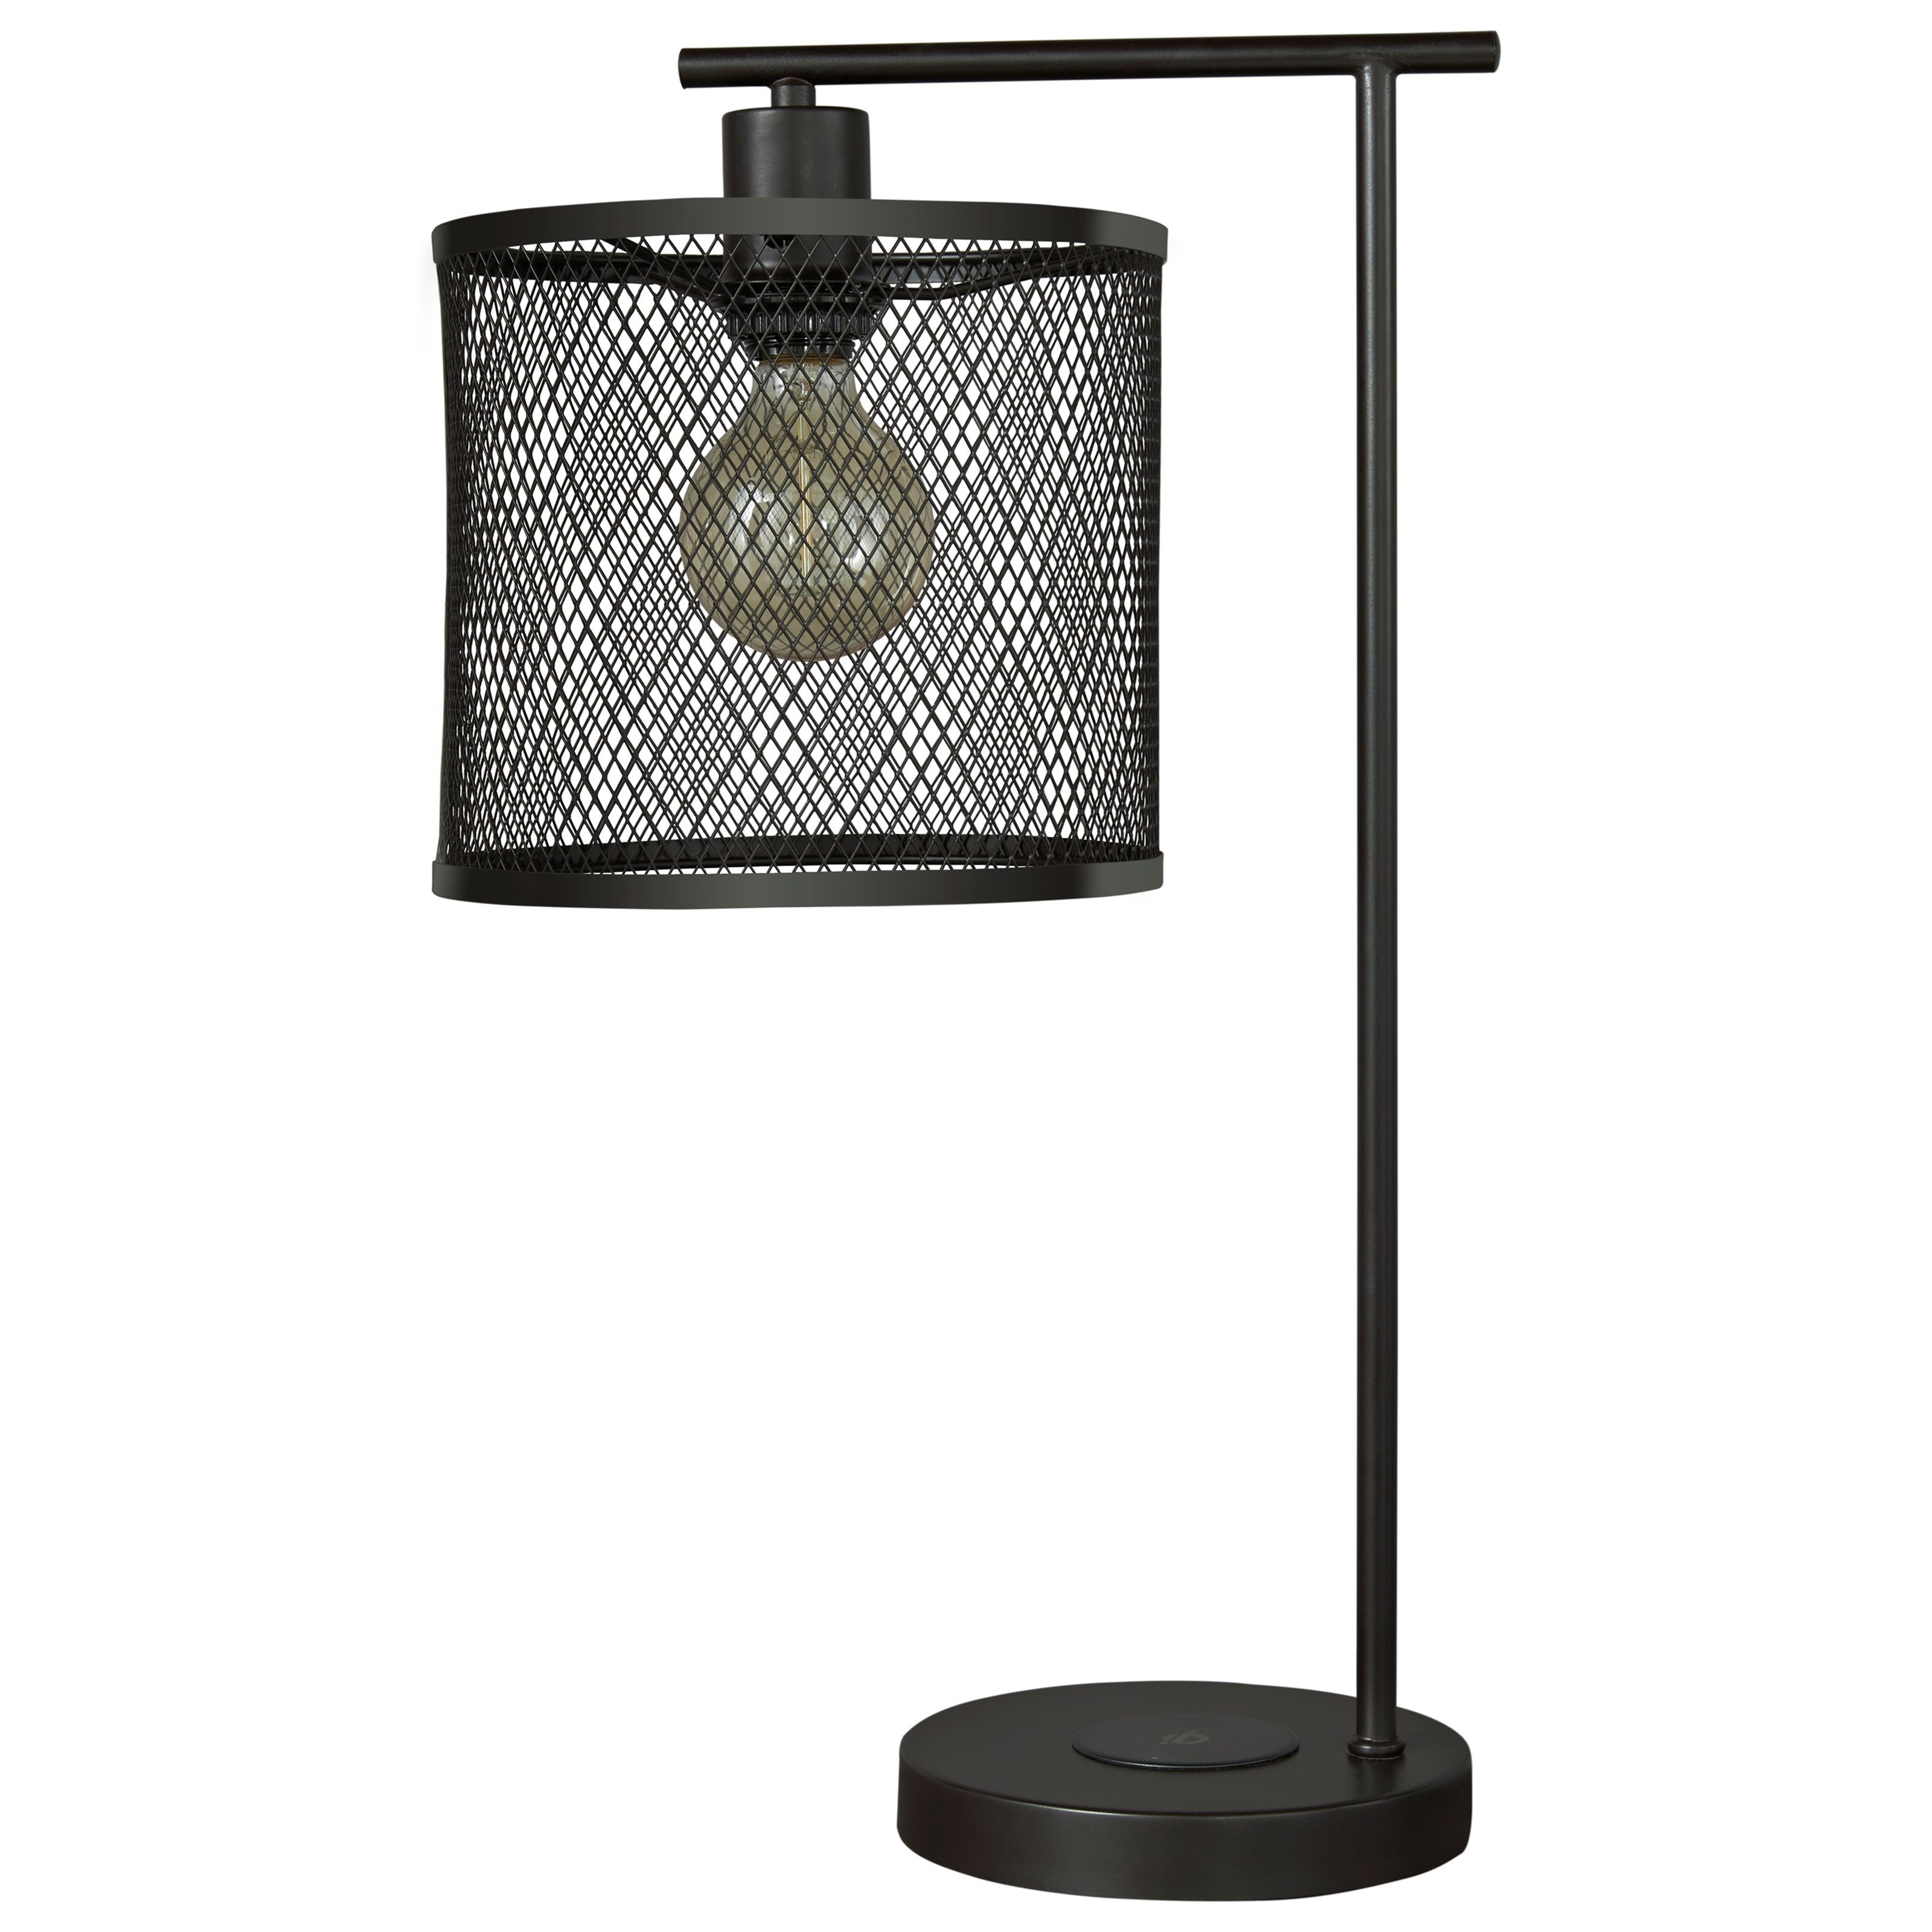 Lamps - Casual Nolden Bronze Finish Metal Desk Lamp by Ashley (Signature Design) at Johnny Janosik